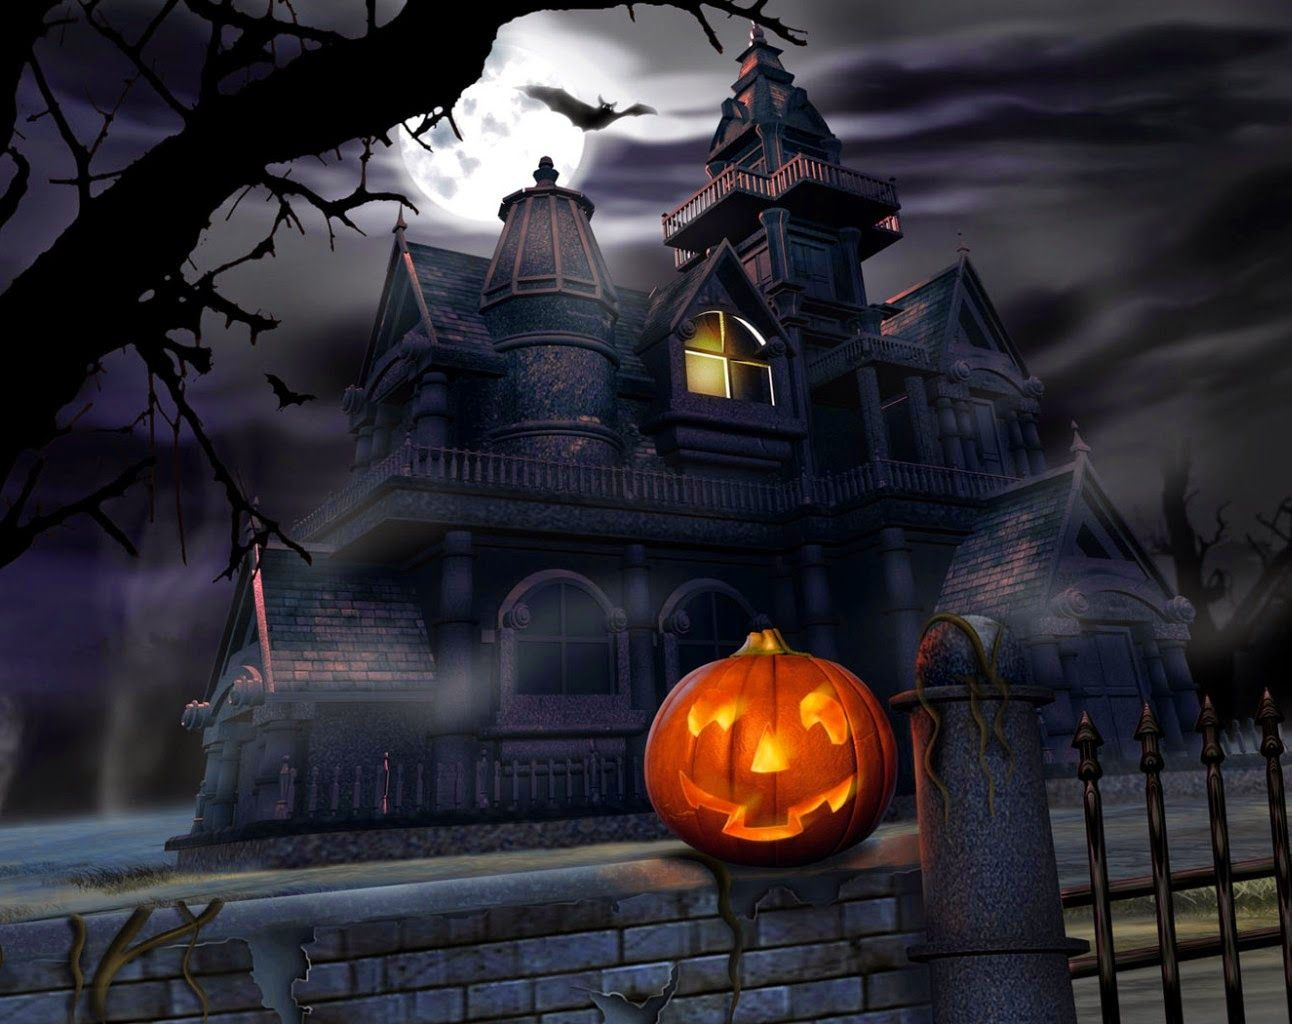 Best Halloween Wallpapers For iPhone, iPad, Android